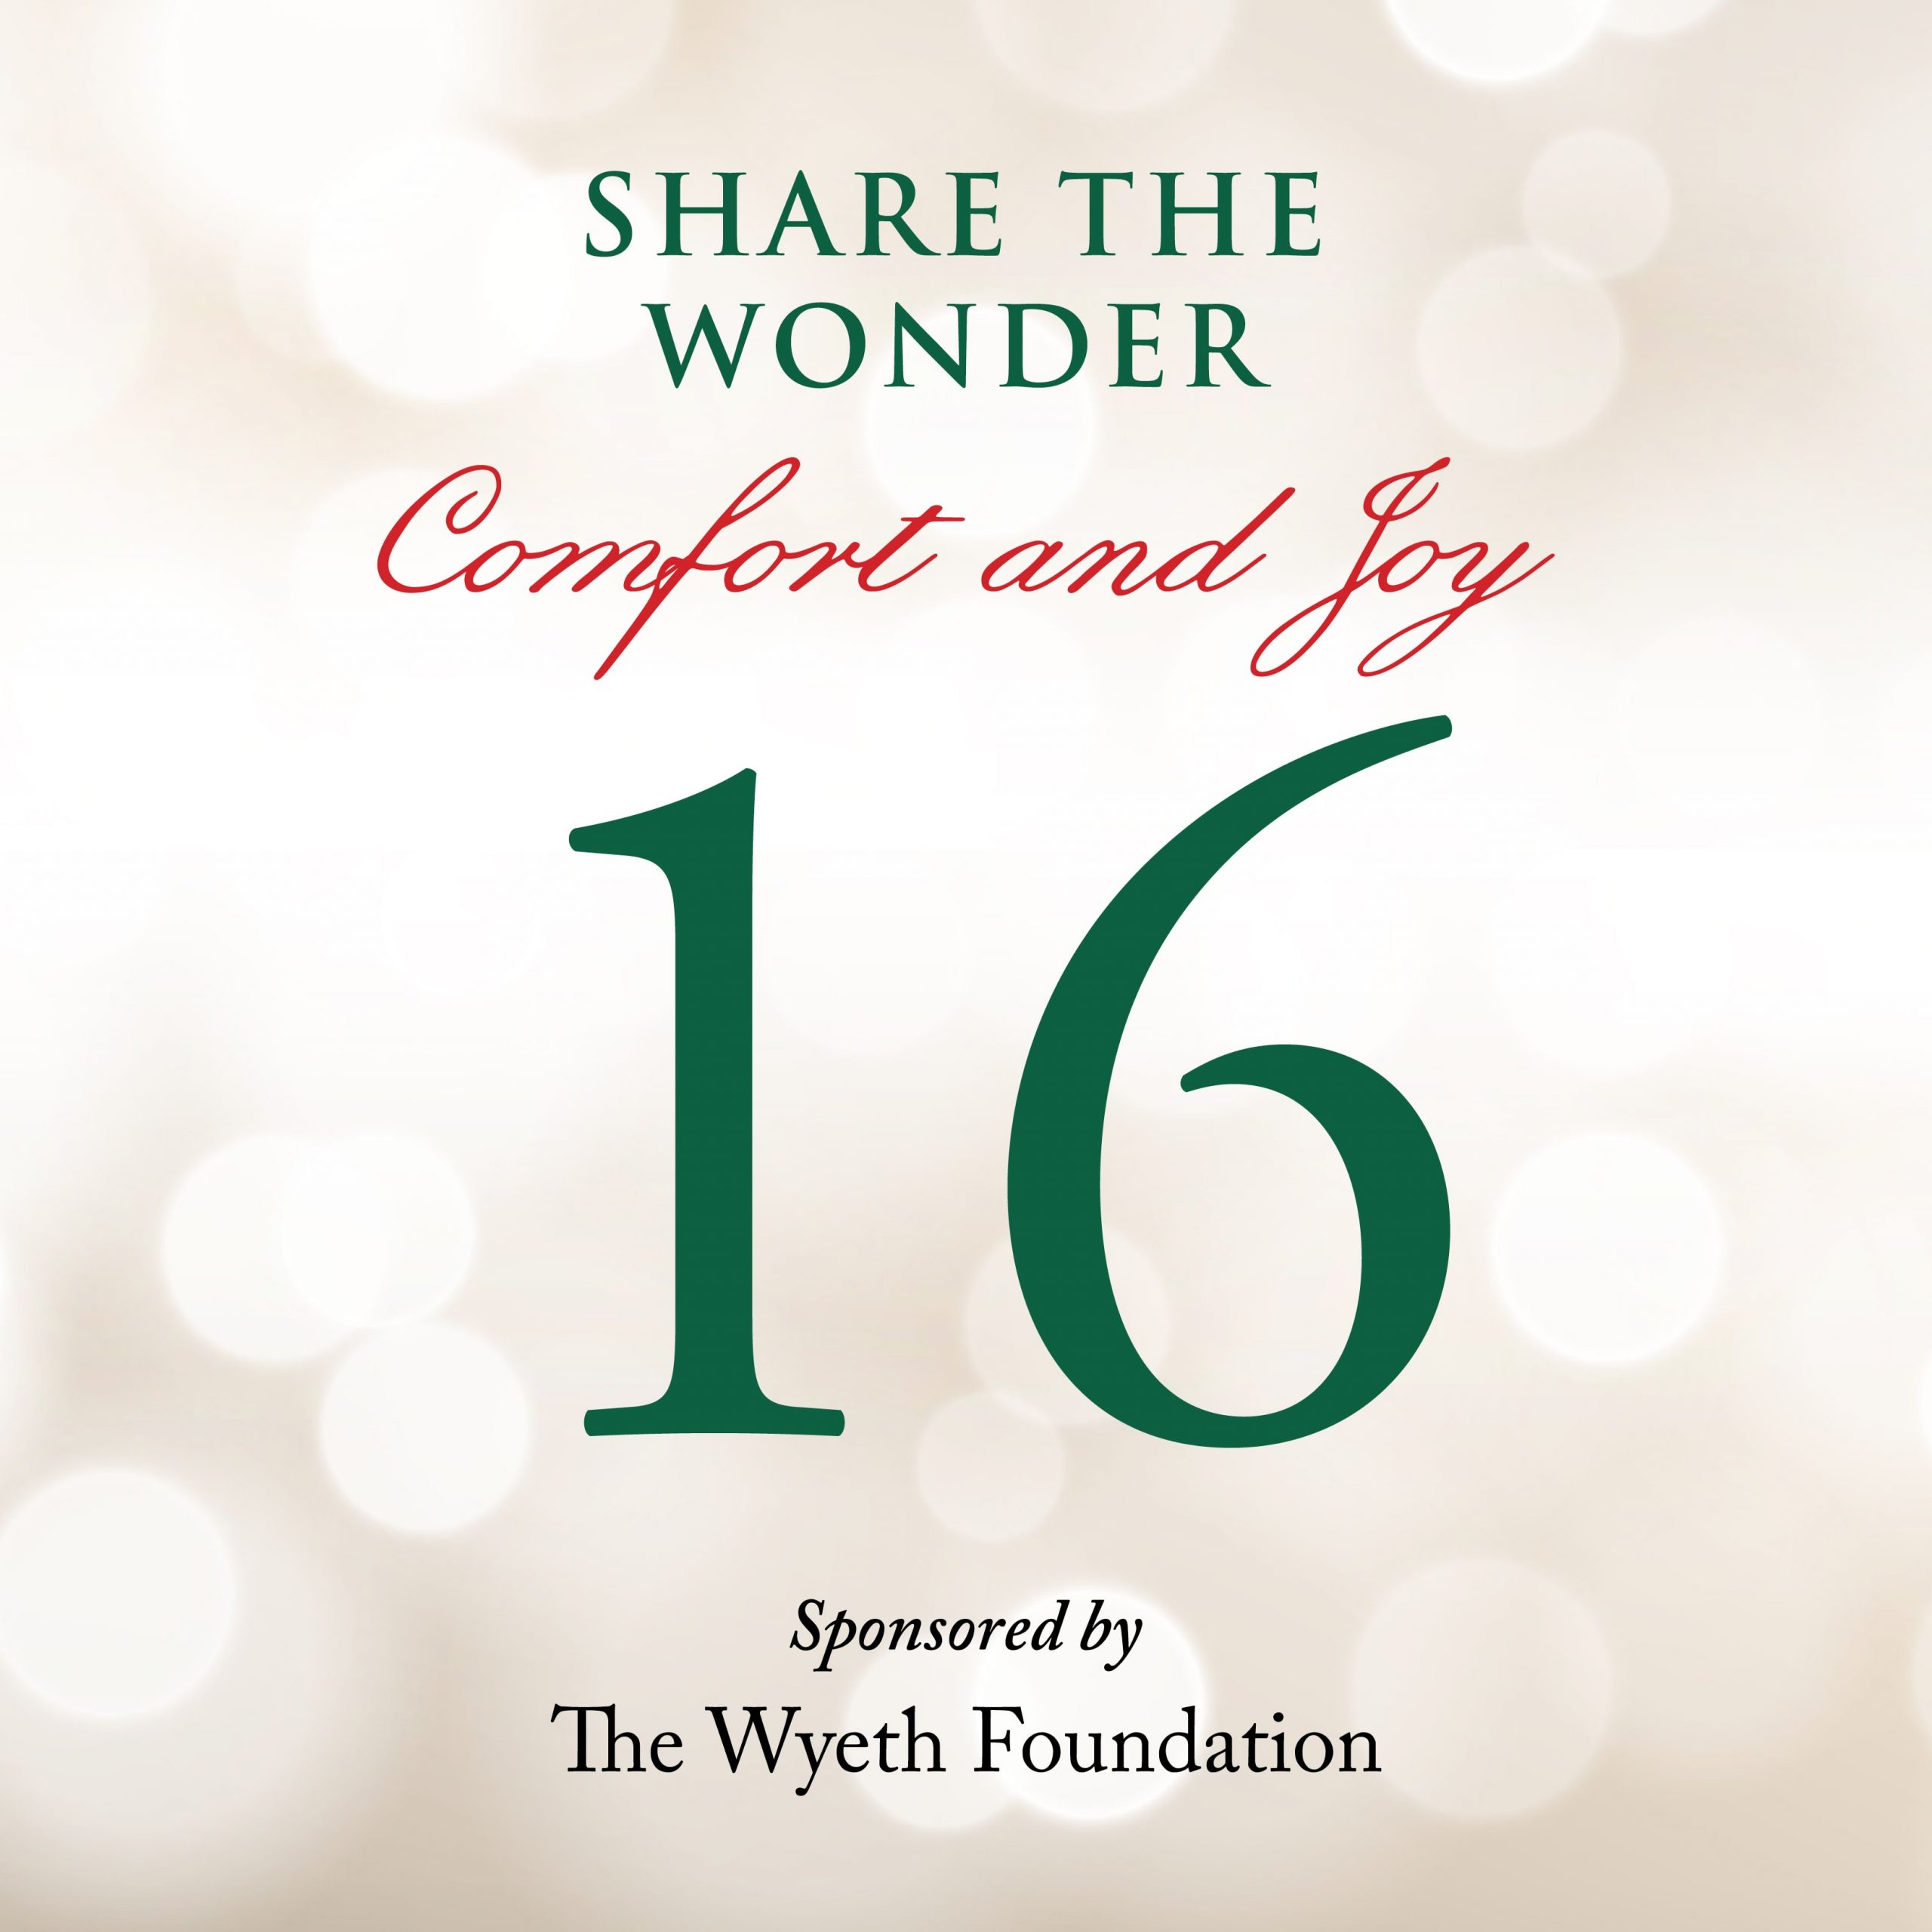 Day 16 of Share the Wonder: December 13